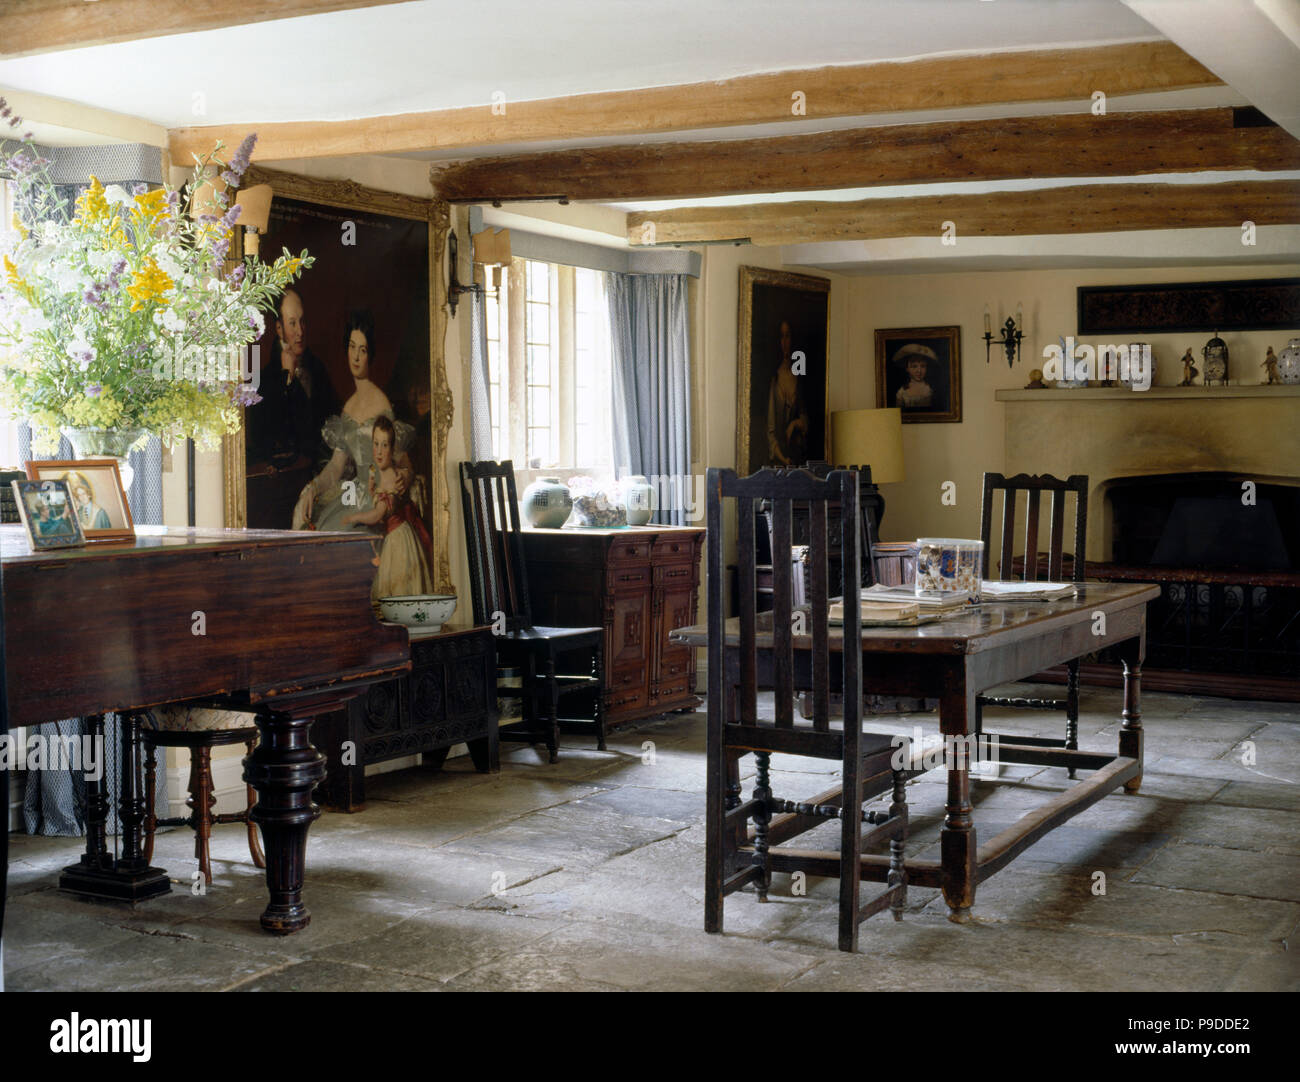 Antique Furniture And Piano In An Old Fashioned Dining Room With A Flag  Stone Floor